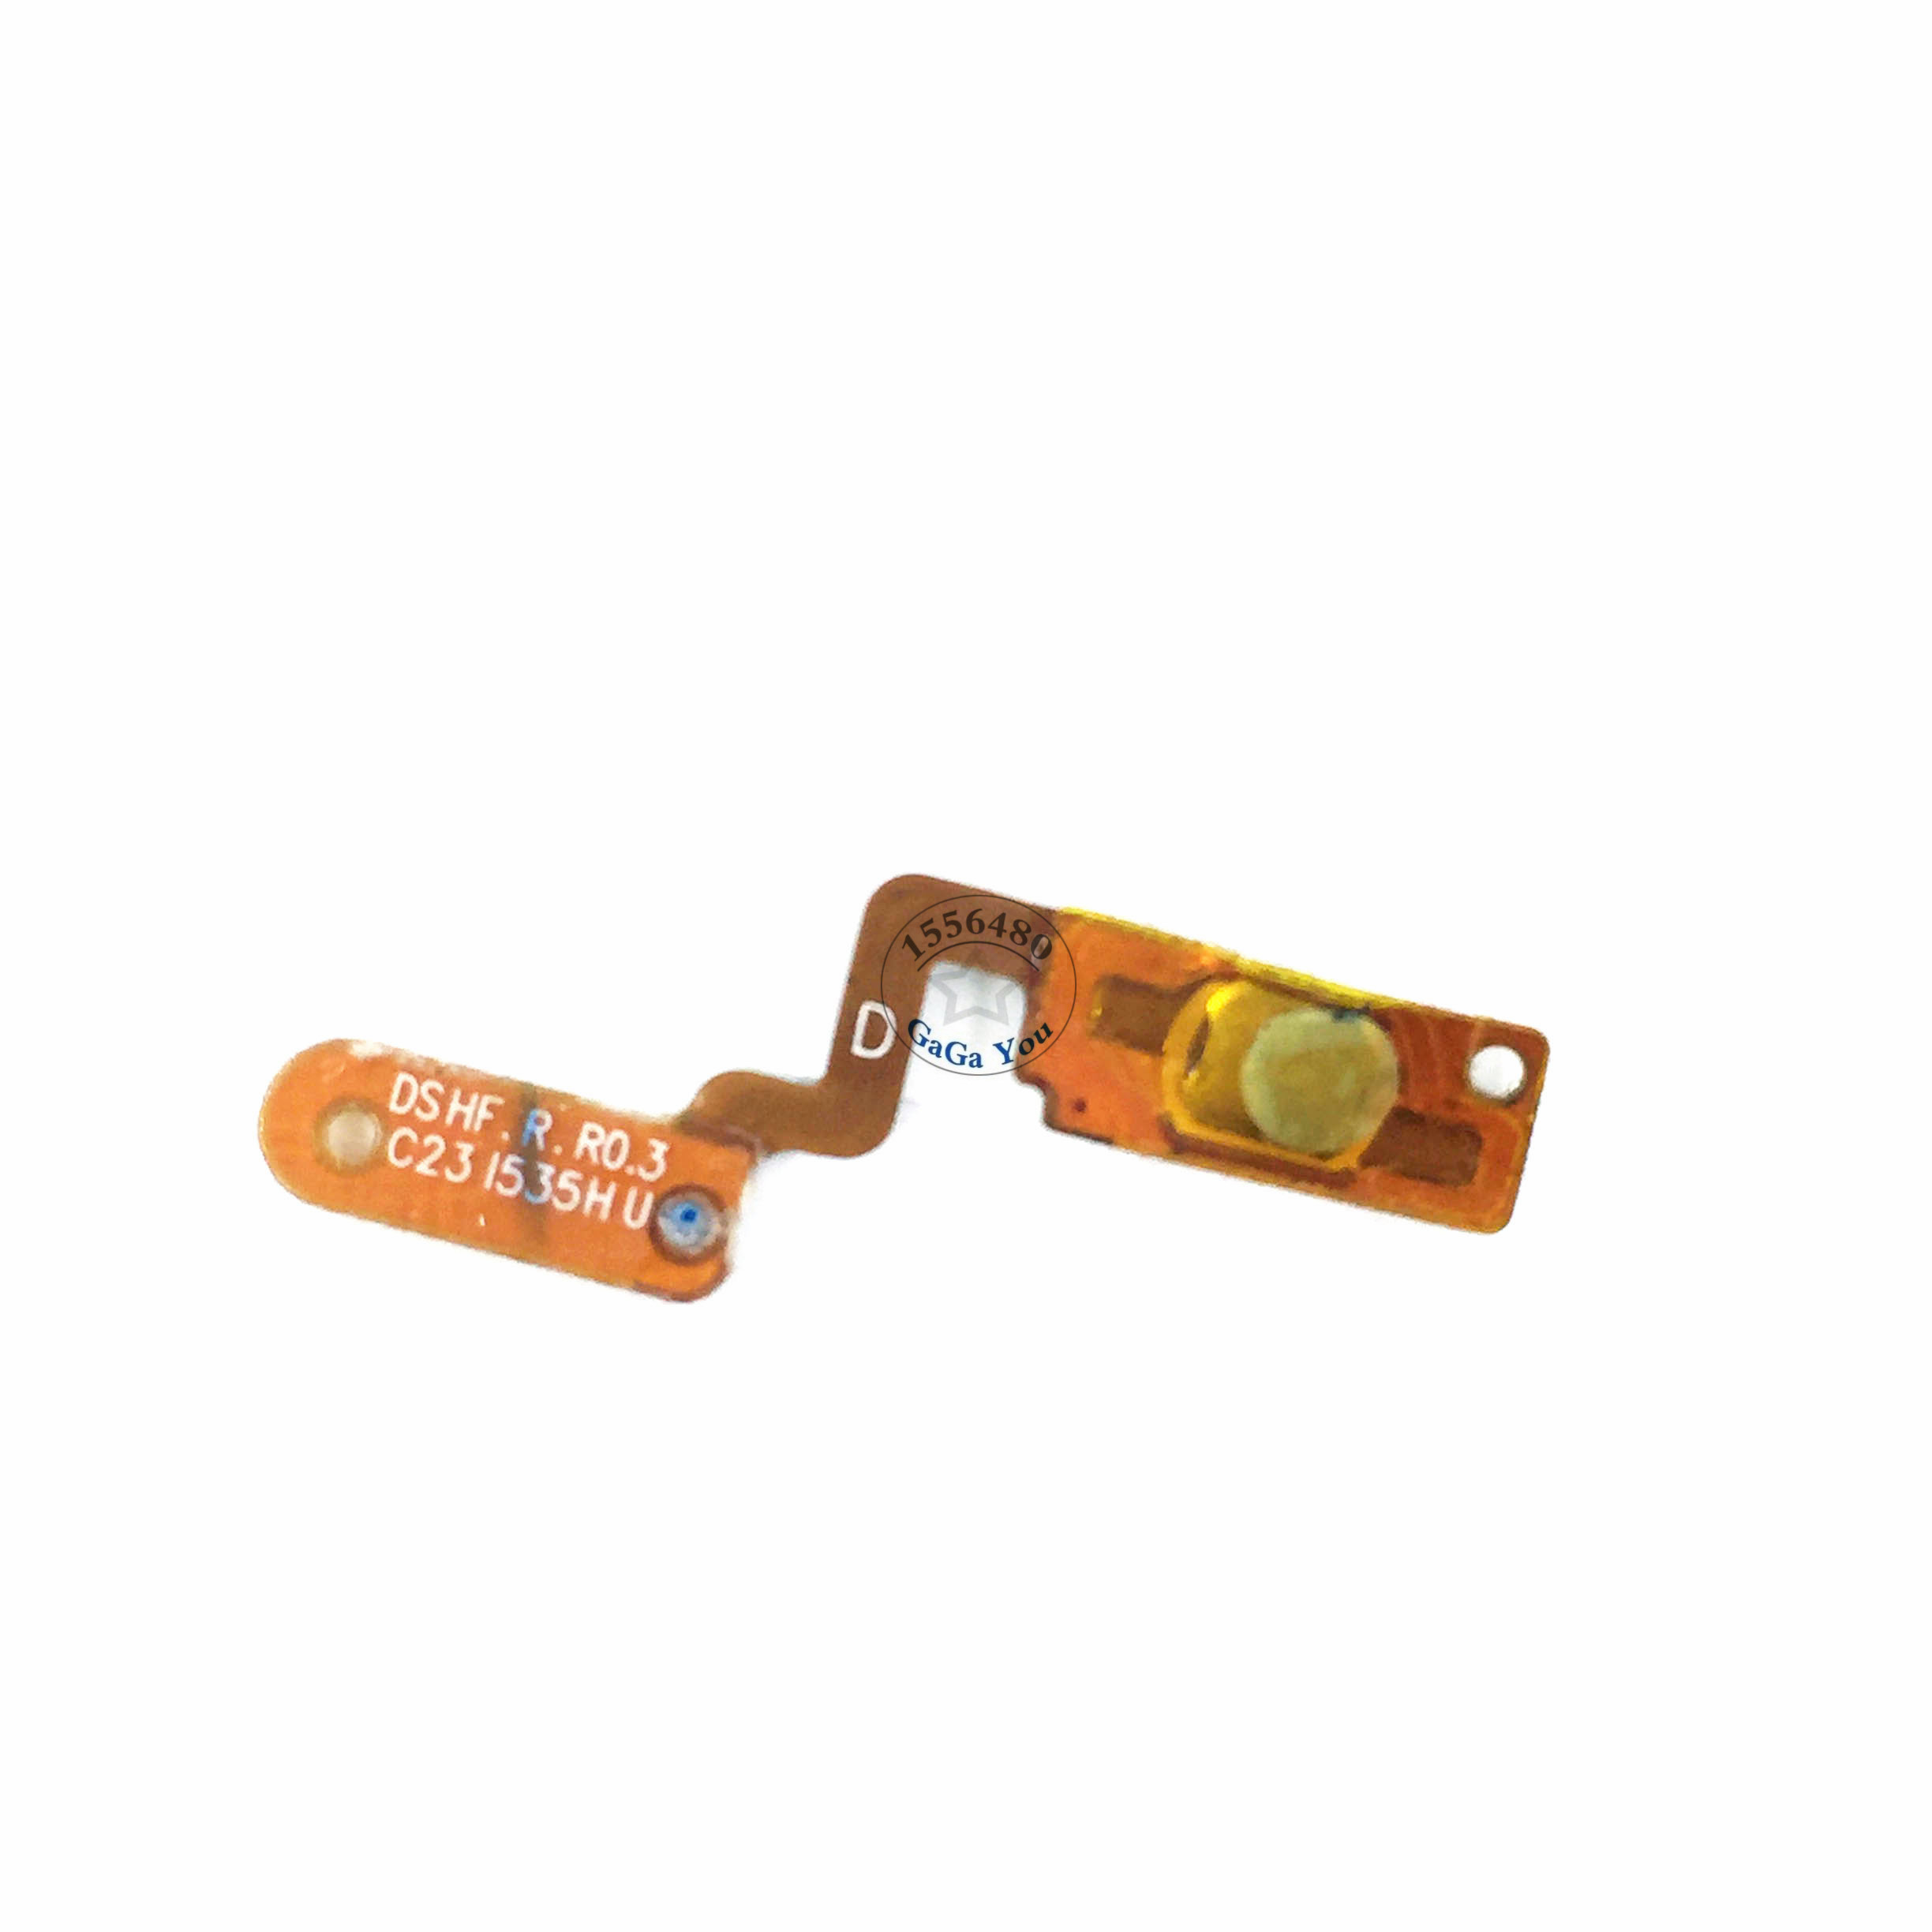 Samsung galaxy s3 mini i8190 power button ways - 5 Pcs Lot Power On Off Button Switch Flex Cable Ribbon For Samsung Galaxy S3